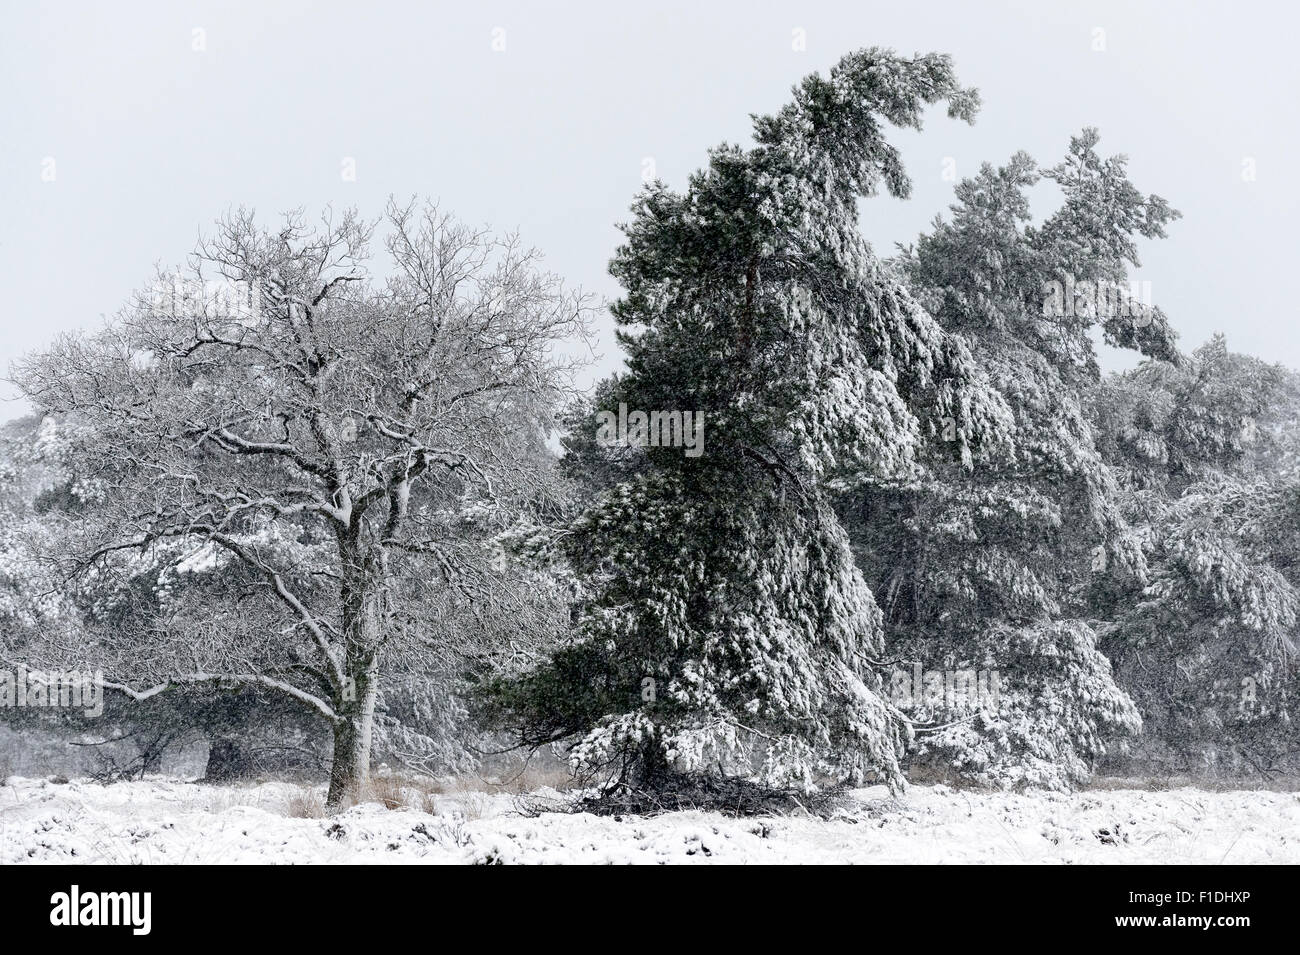 Landscape with oak and pines during the snow storm on December 27th, 2014 in the Veluwe, Netherlands. - Stock Image